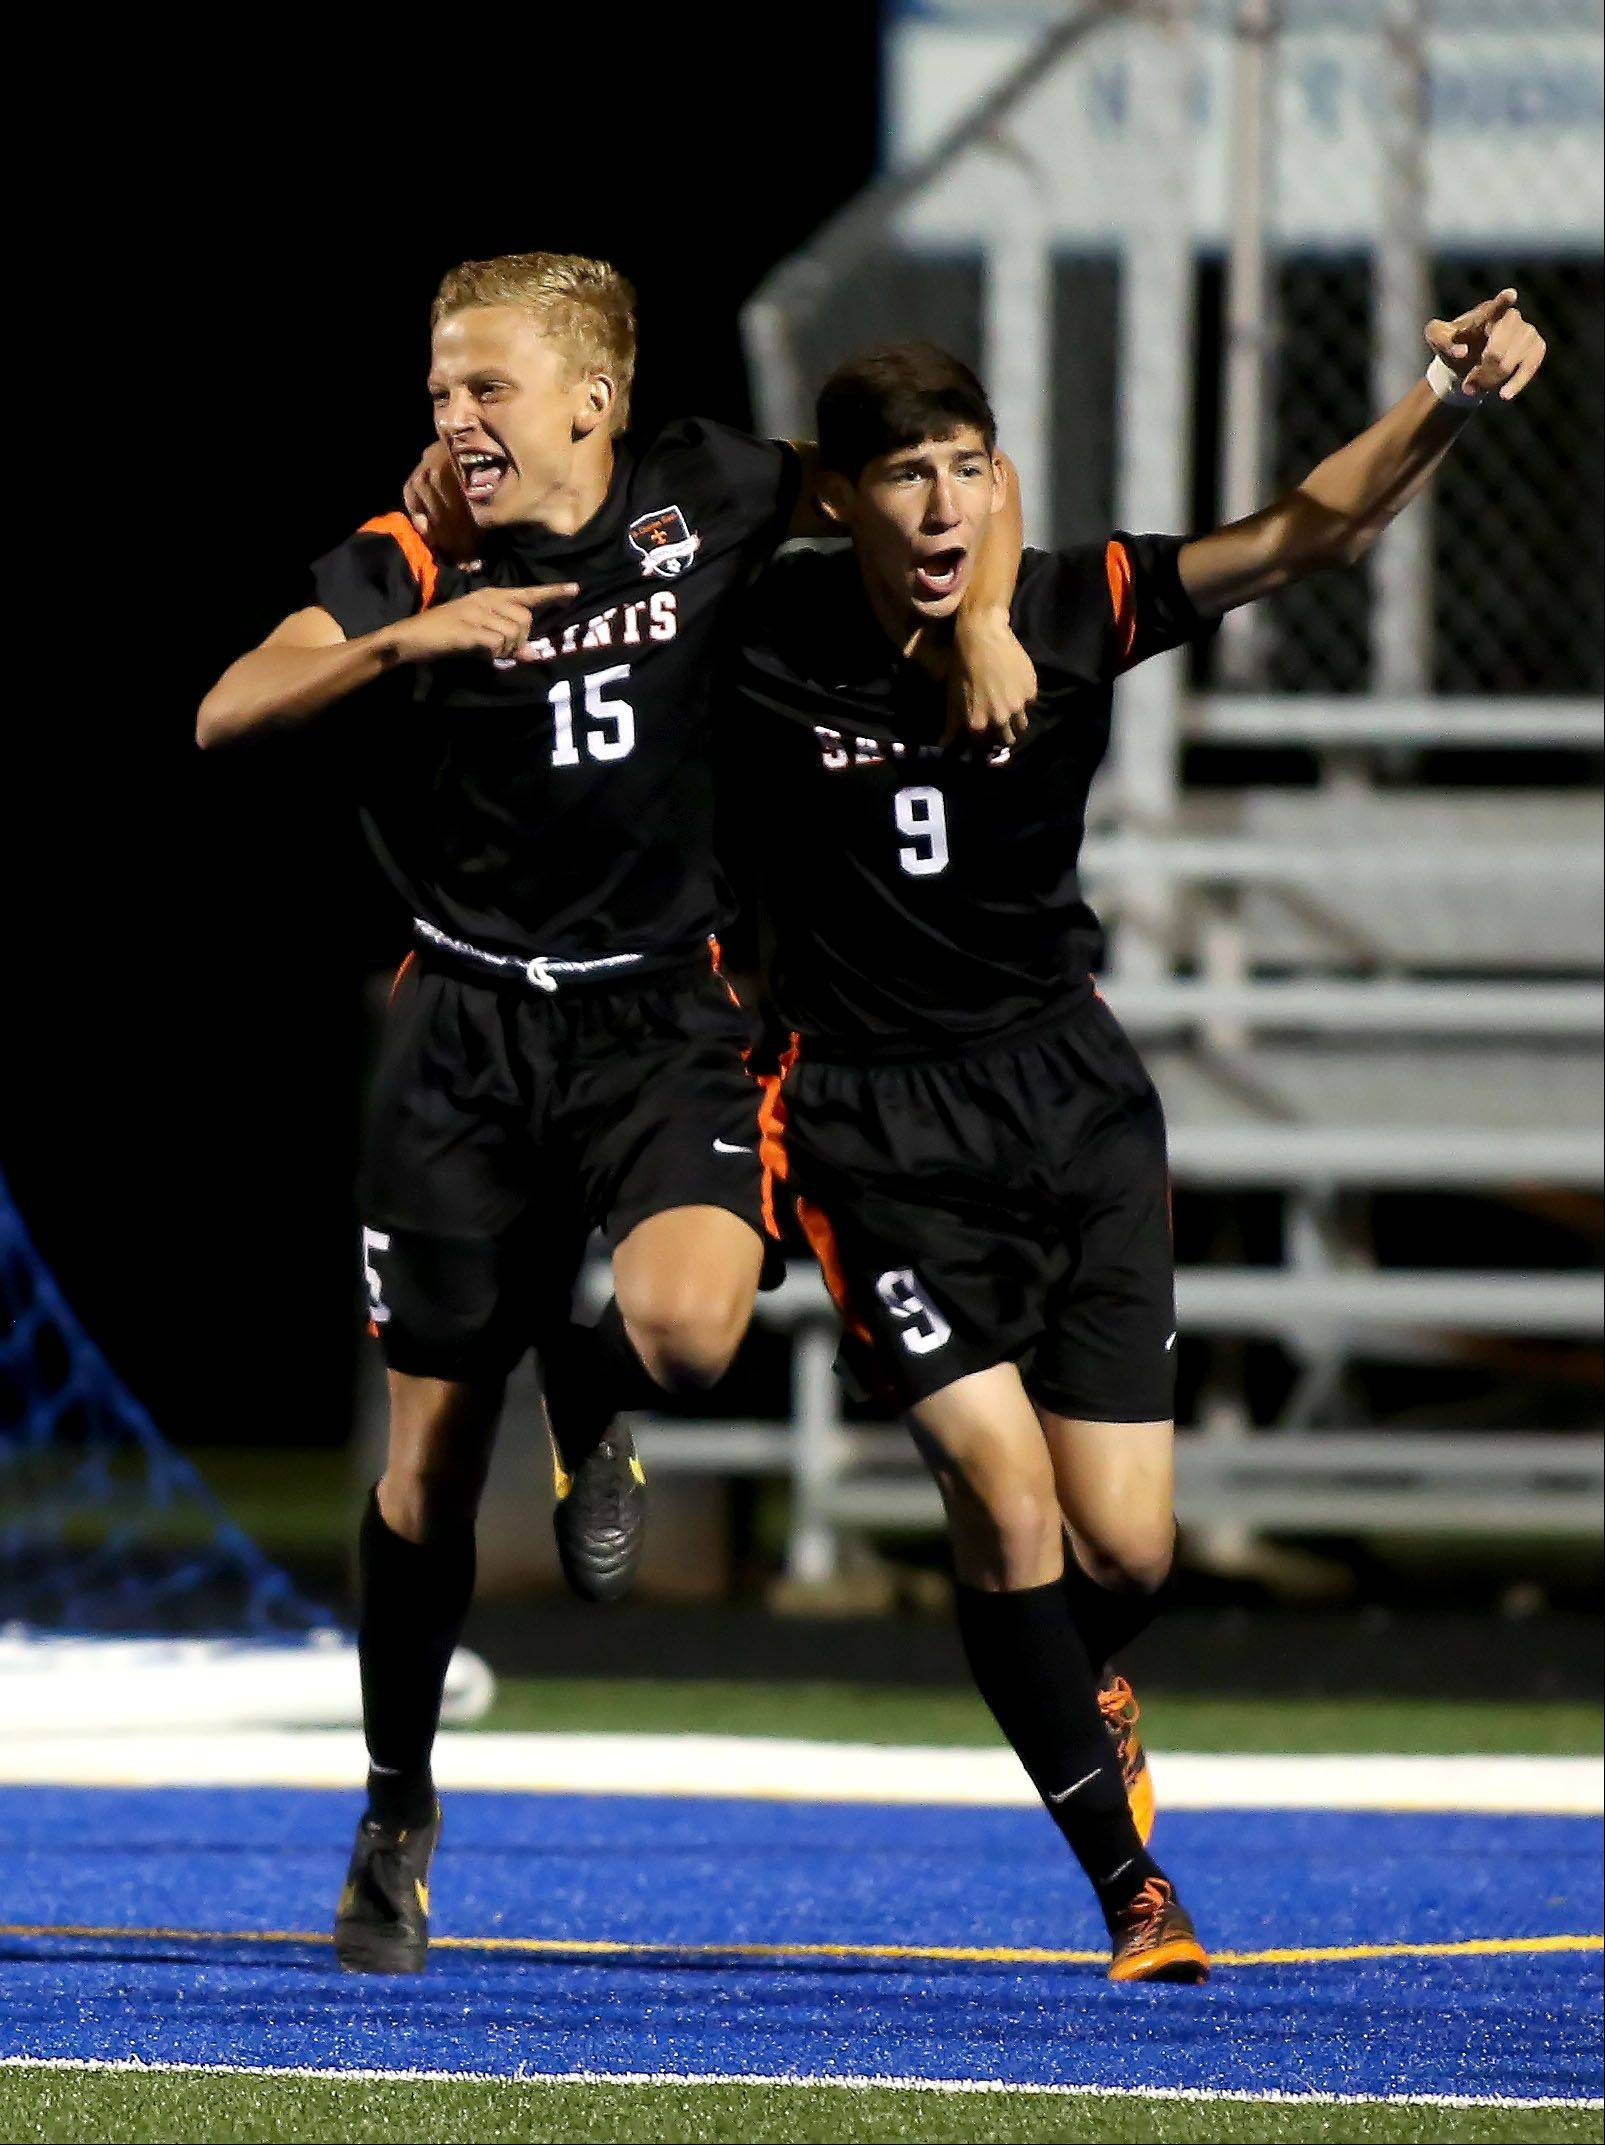 St. Charles East's Kevin Heinrich, left, and Taylor Ortizof celebrate a goal against Geneva during Tuesday's Tri-Cities boys soccer game in Geneva.